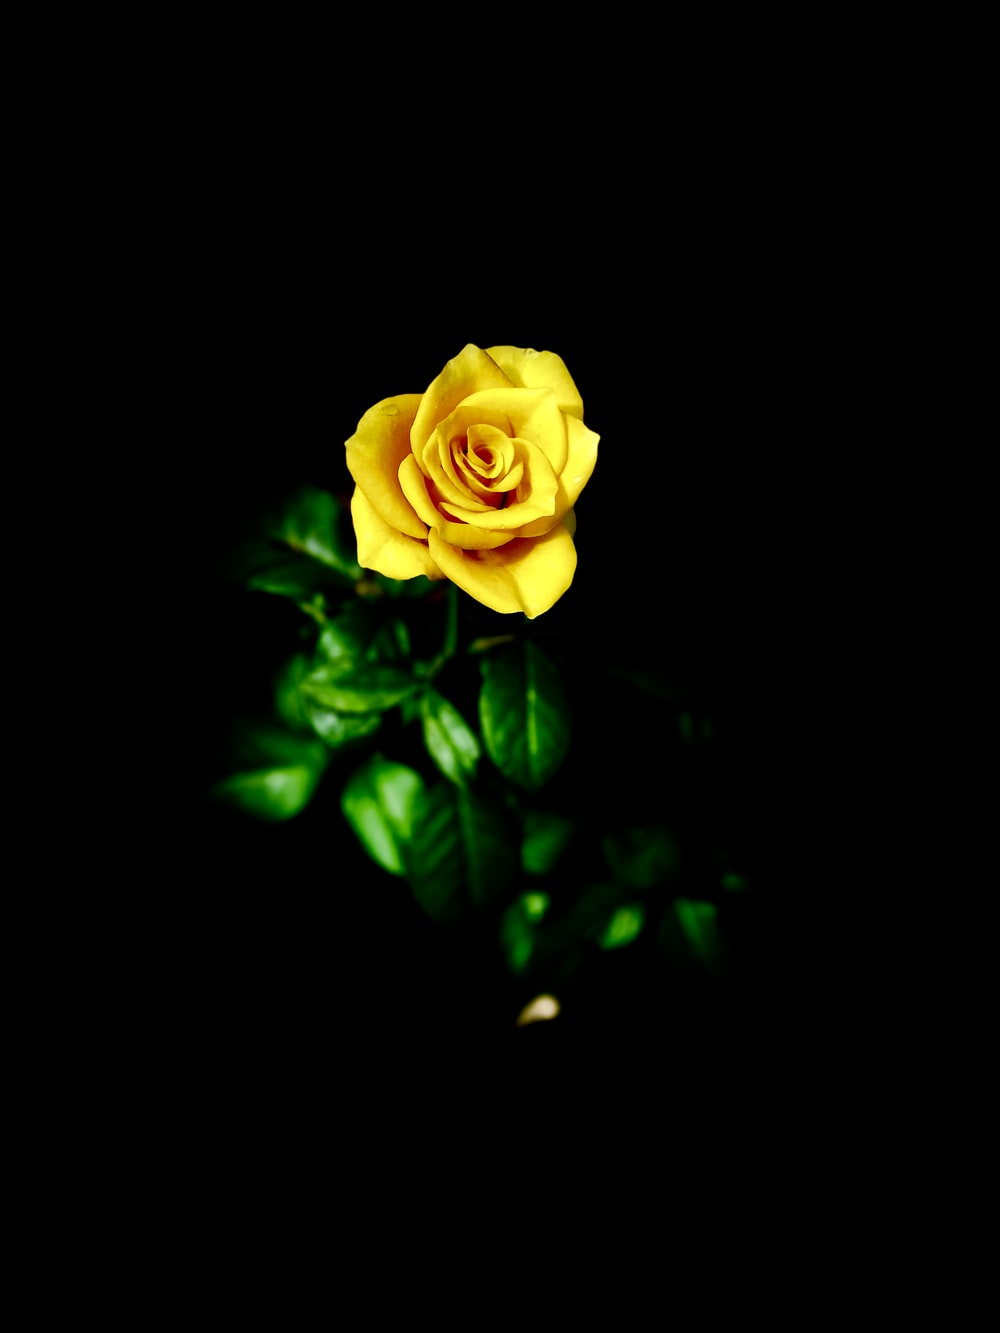 selective focus photography of yellow rose flower in bloom